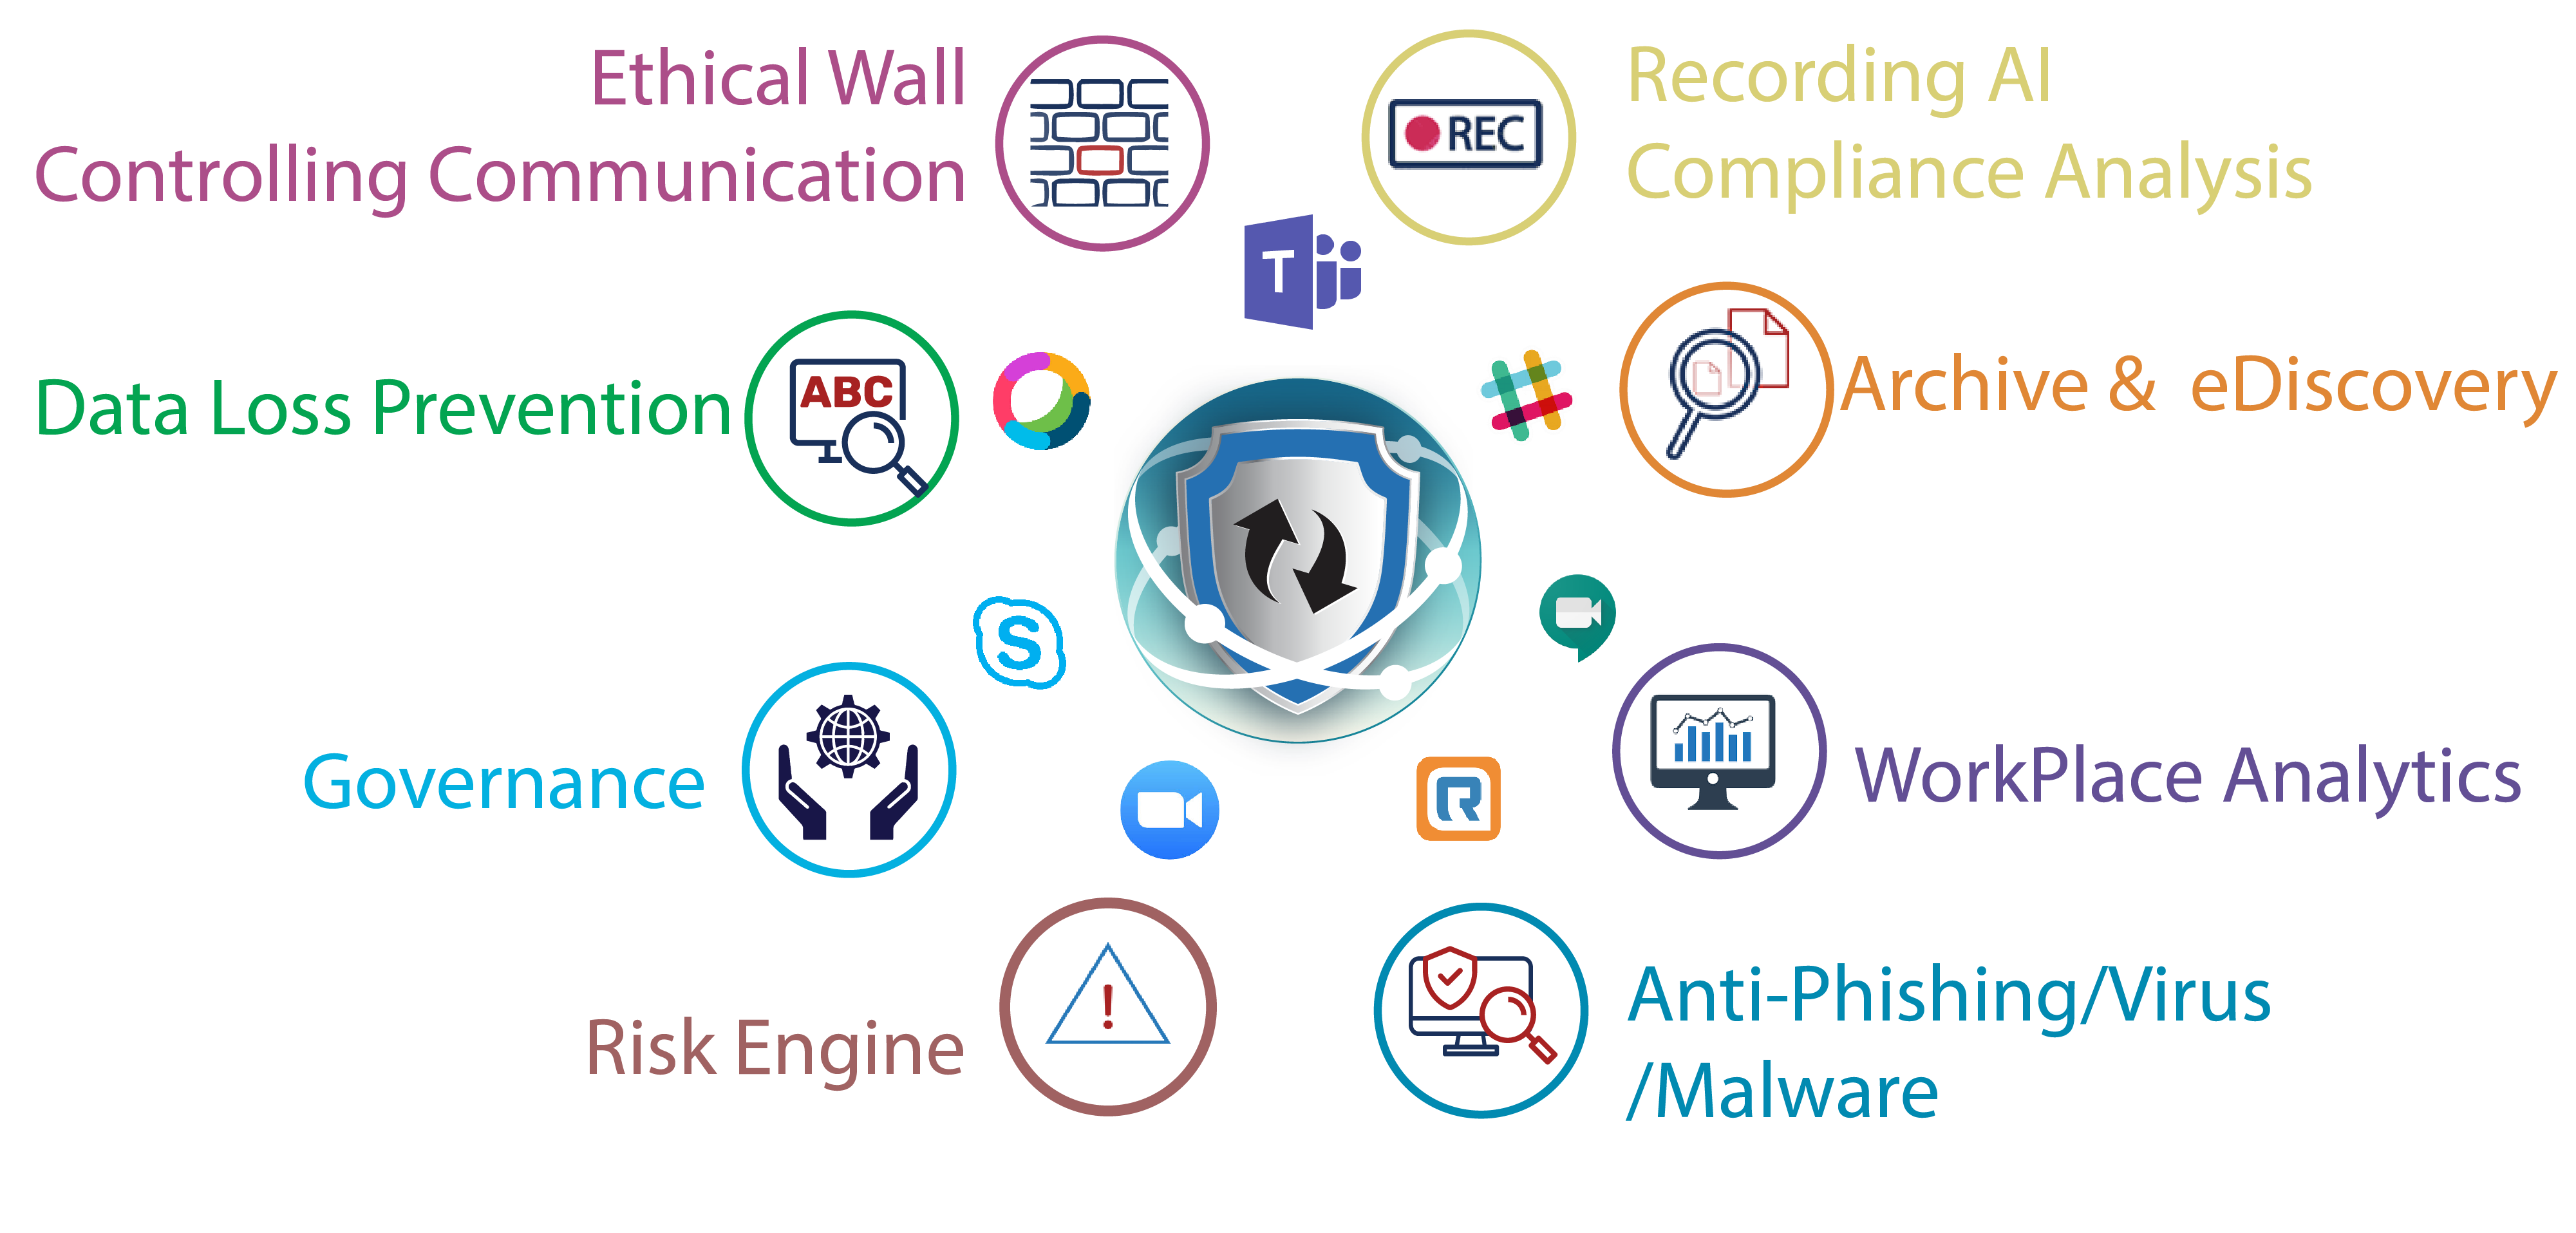 About AGAT Software